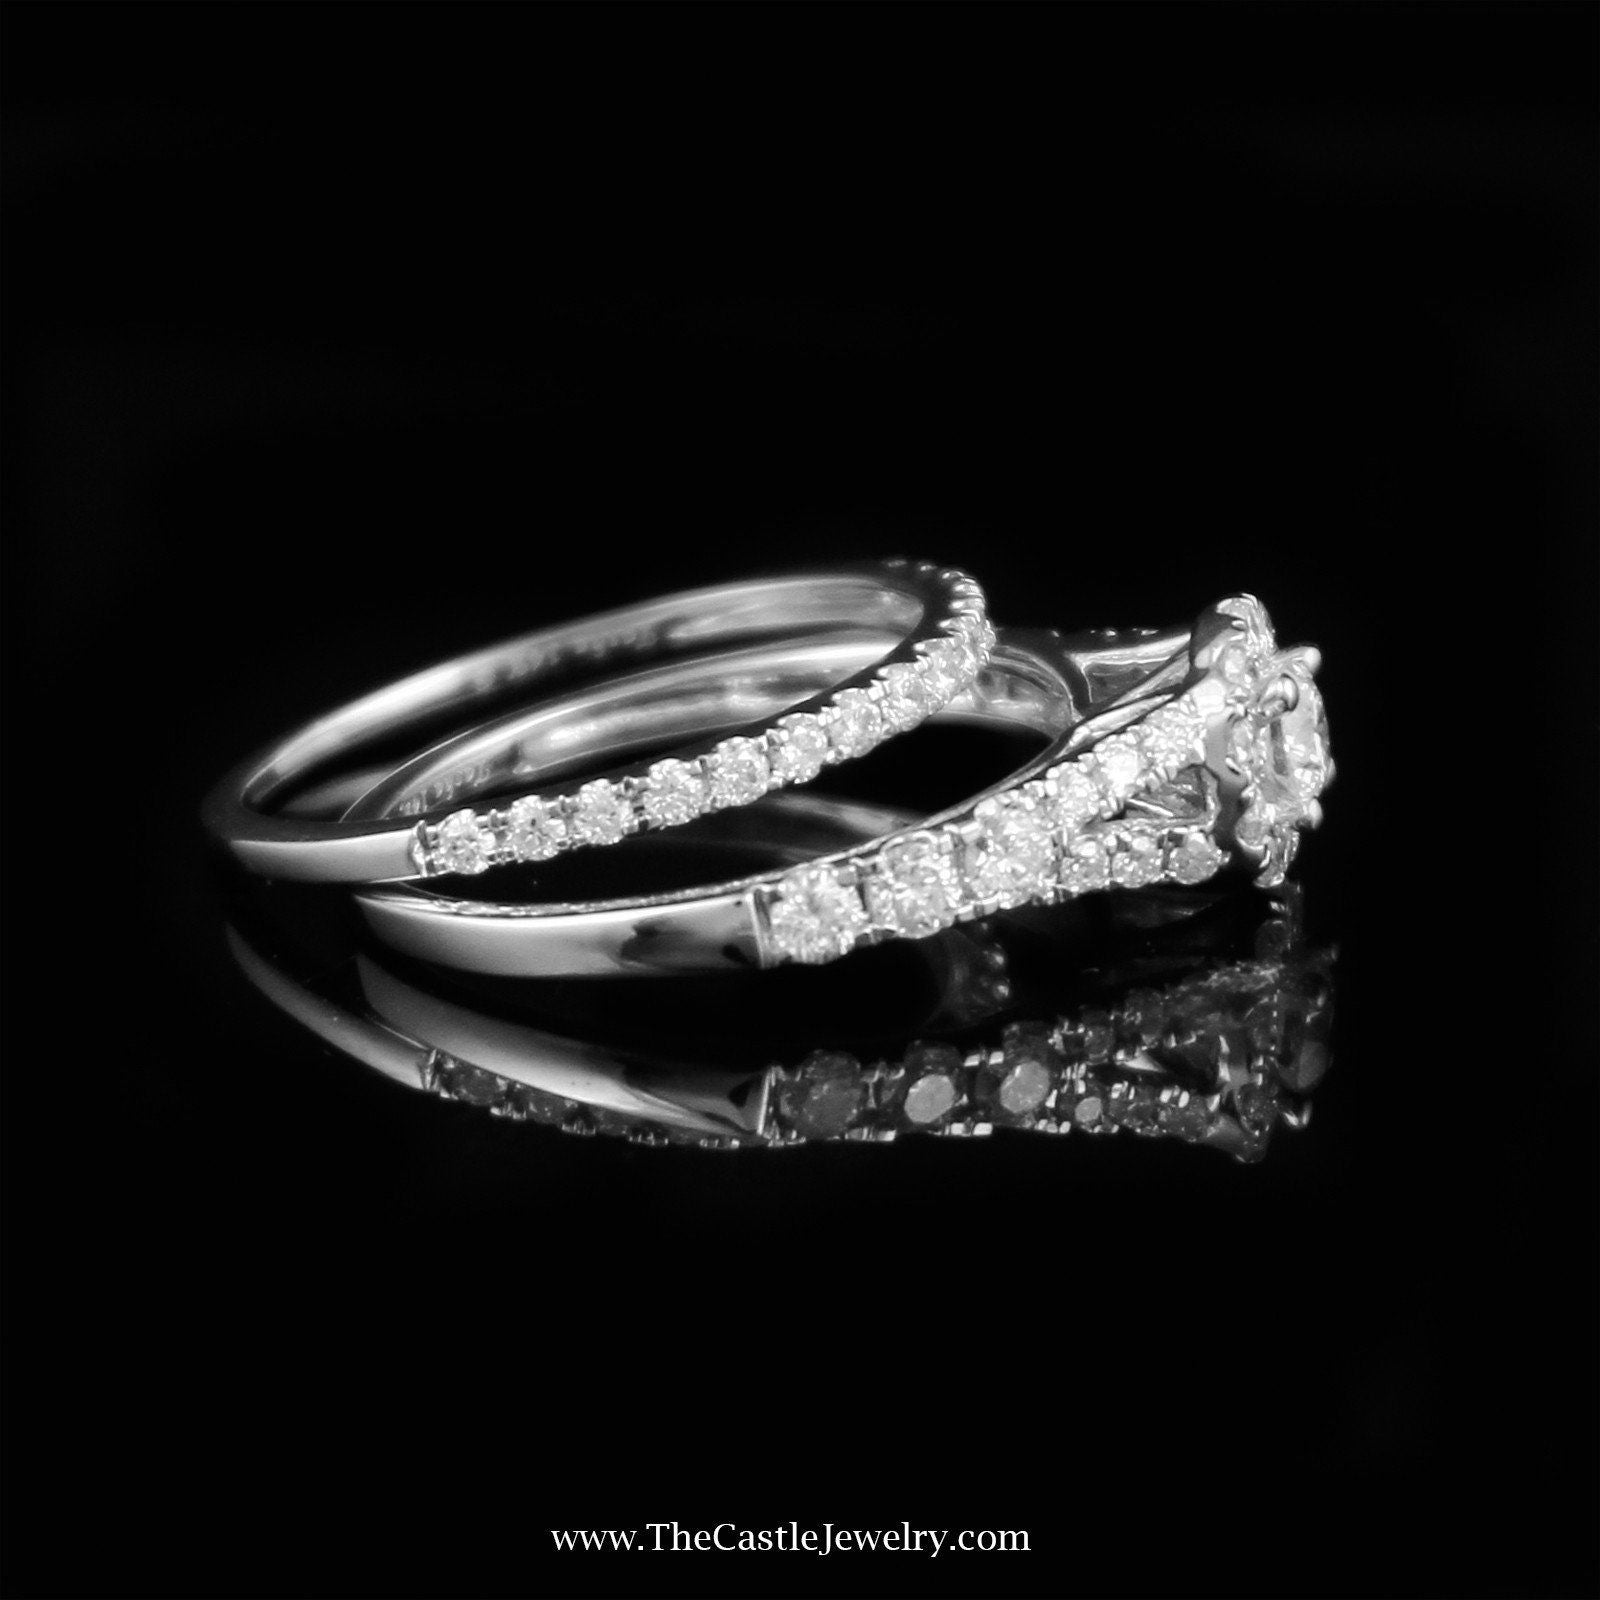 Crown Collection 1cttw Diamond Bridal Set w/ Halo Accent in 14K White Gold-2